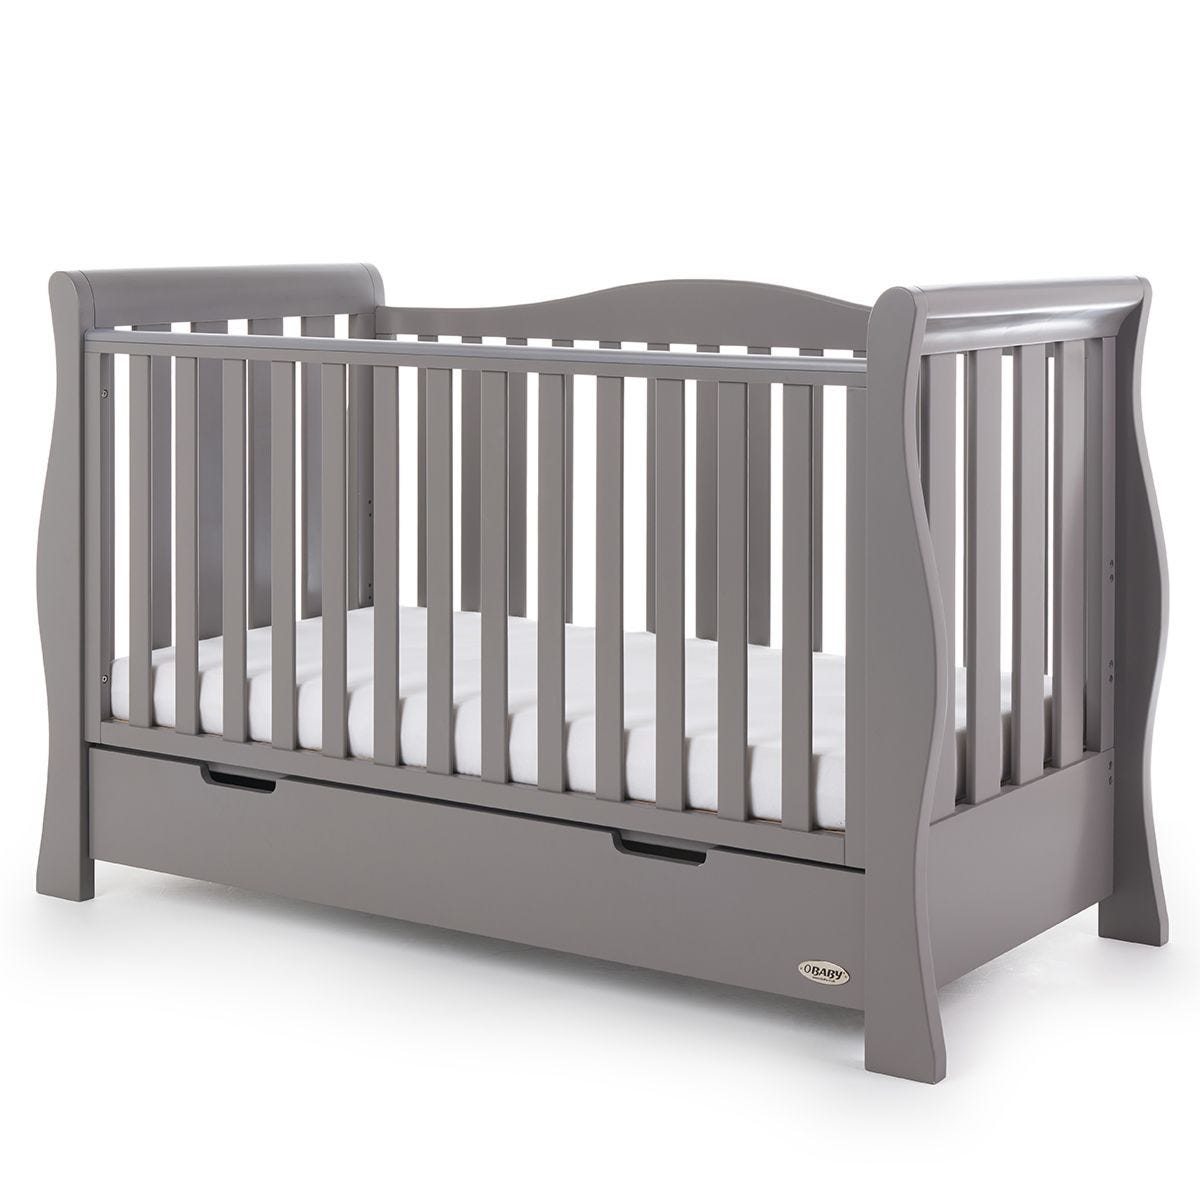 Obaby Stamford Luxe Sleigh Cot Bed Taupe Grey